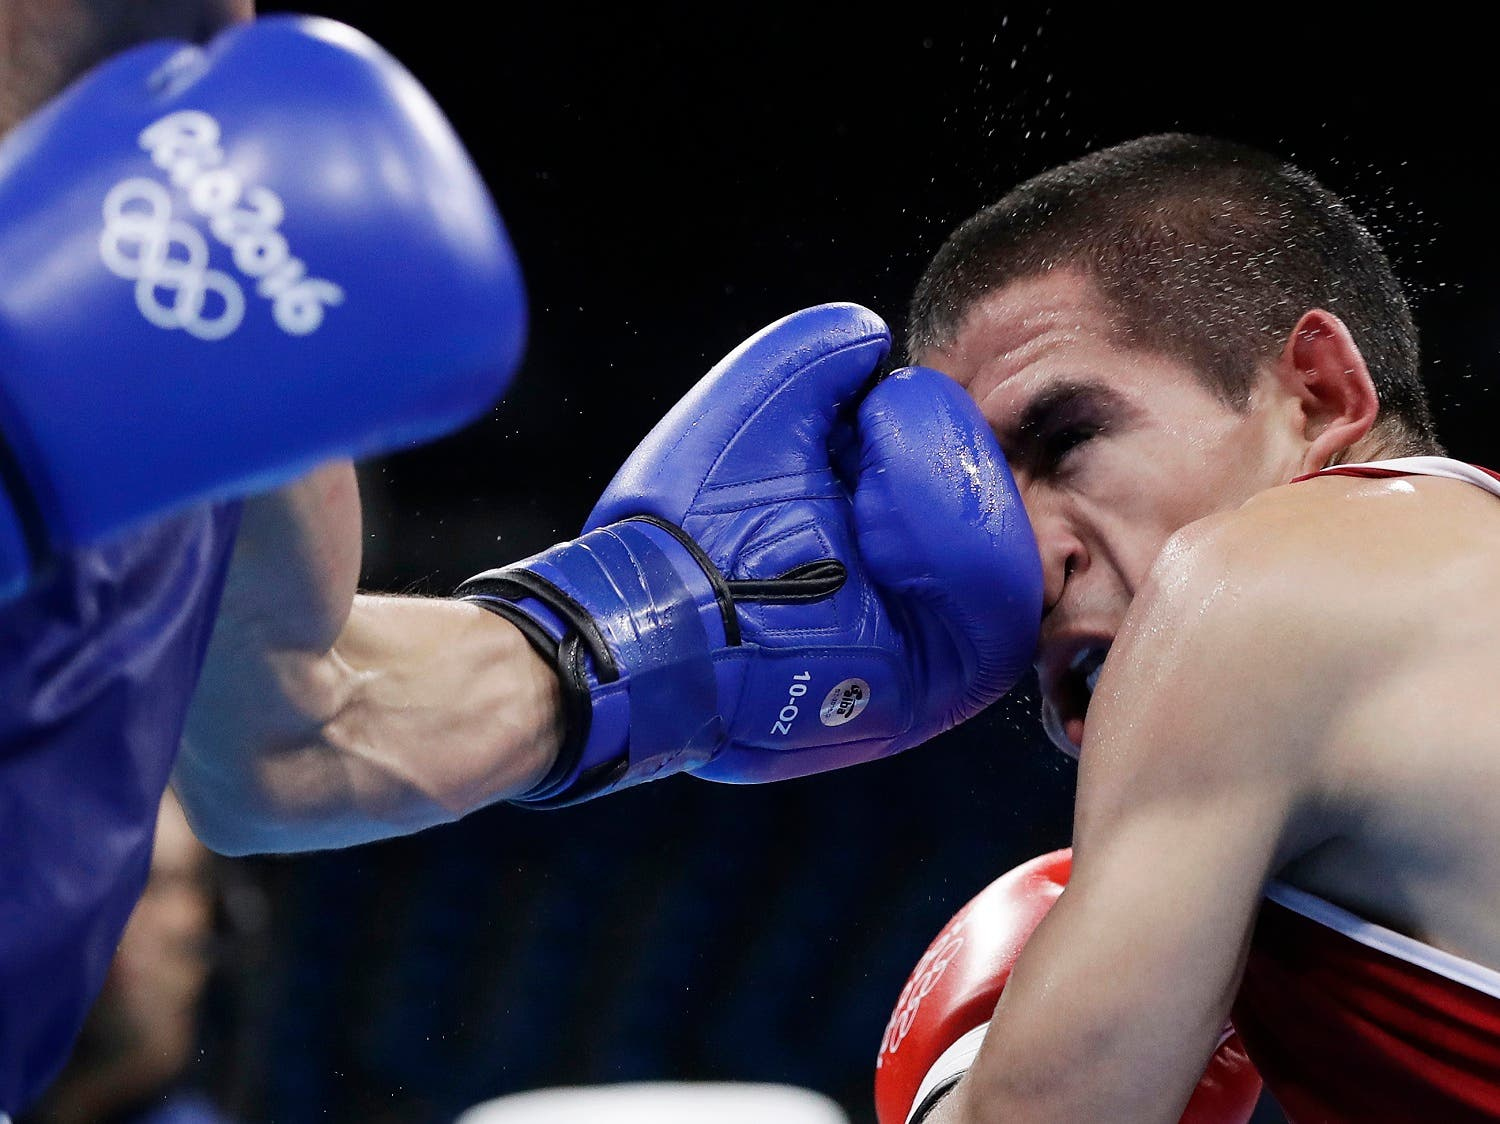 Mexico's Joselito Velasquez, left, fights Argentina's Leandro Blanc during a men's light flyweight 49kg preliminary boxing match (Photo: AP)